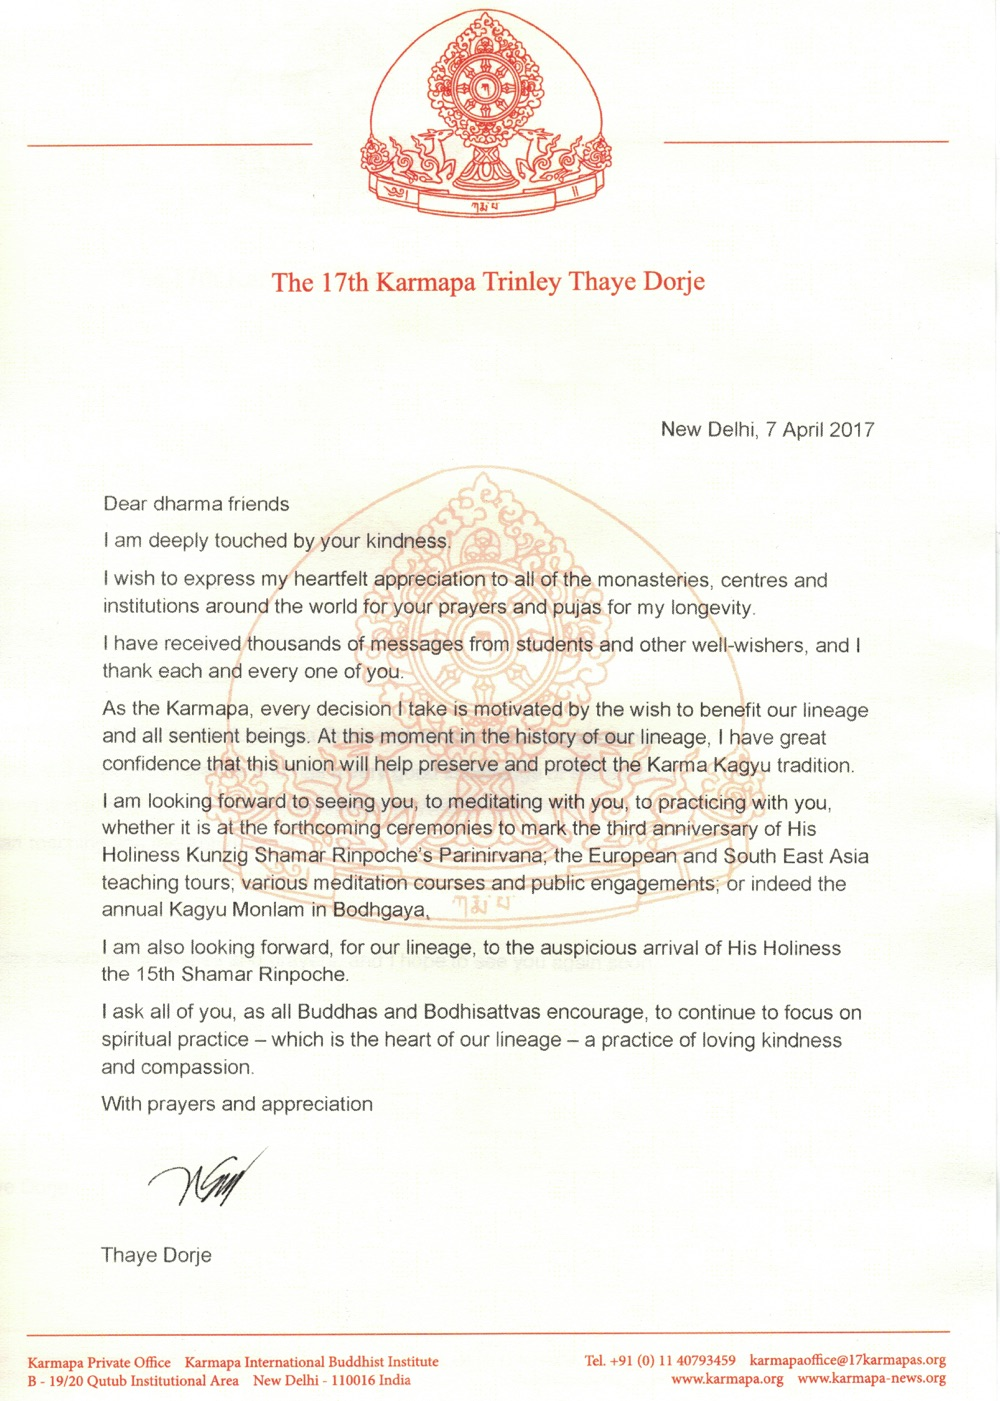 Appreciation Letter | A Letter Of Appreciation From Karmapa The 17th Karmapa Official